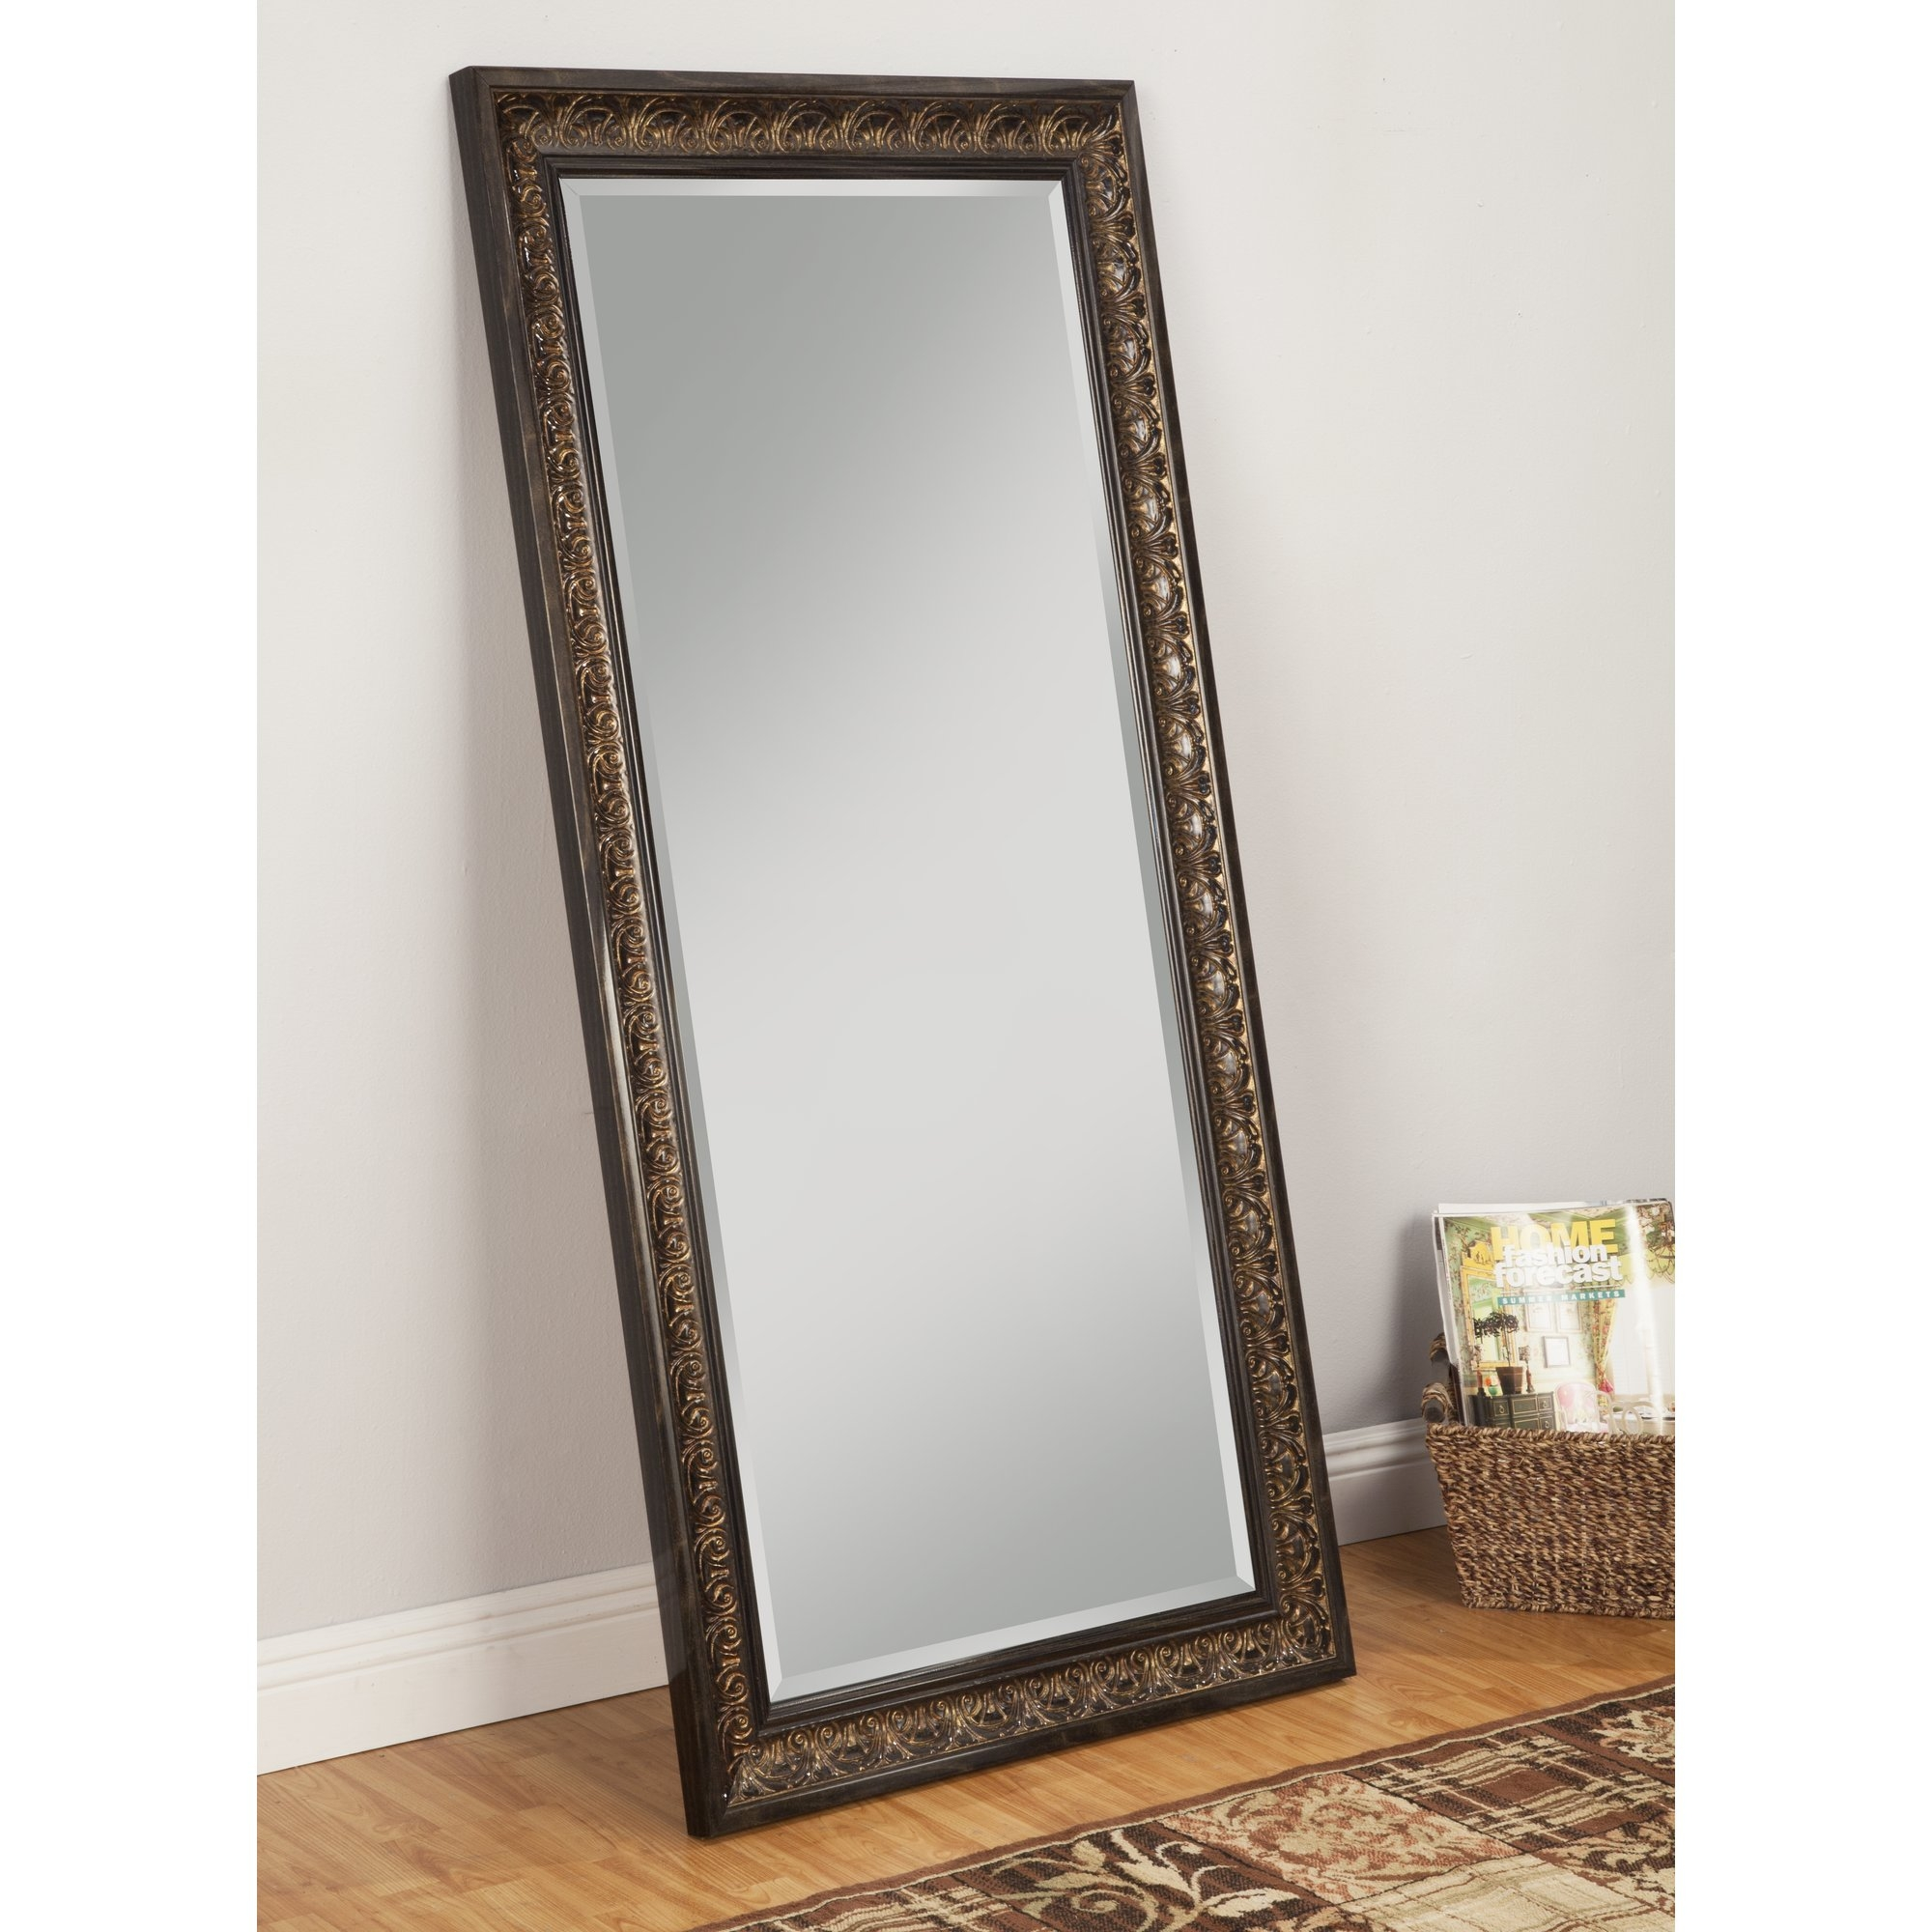 Large Oversized Wall Mirrors Youll Love Wayfair For Oversized Mirrors For Sale (Image 12 of 15)